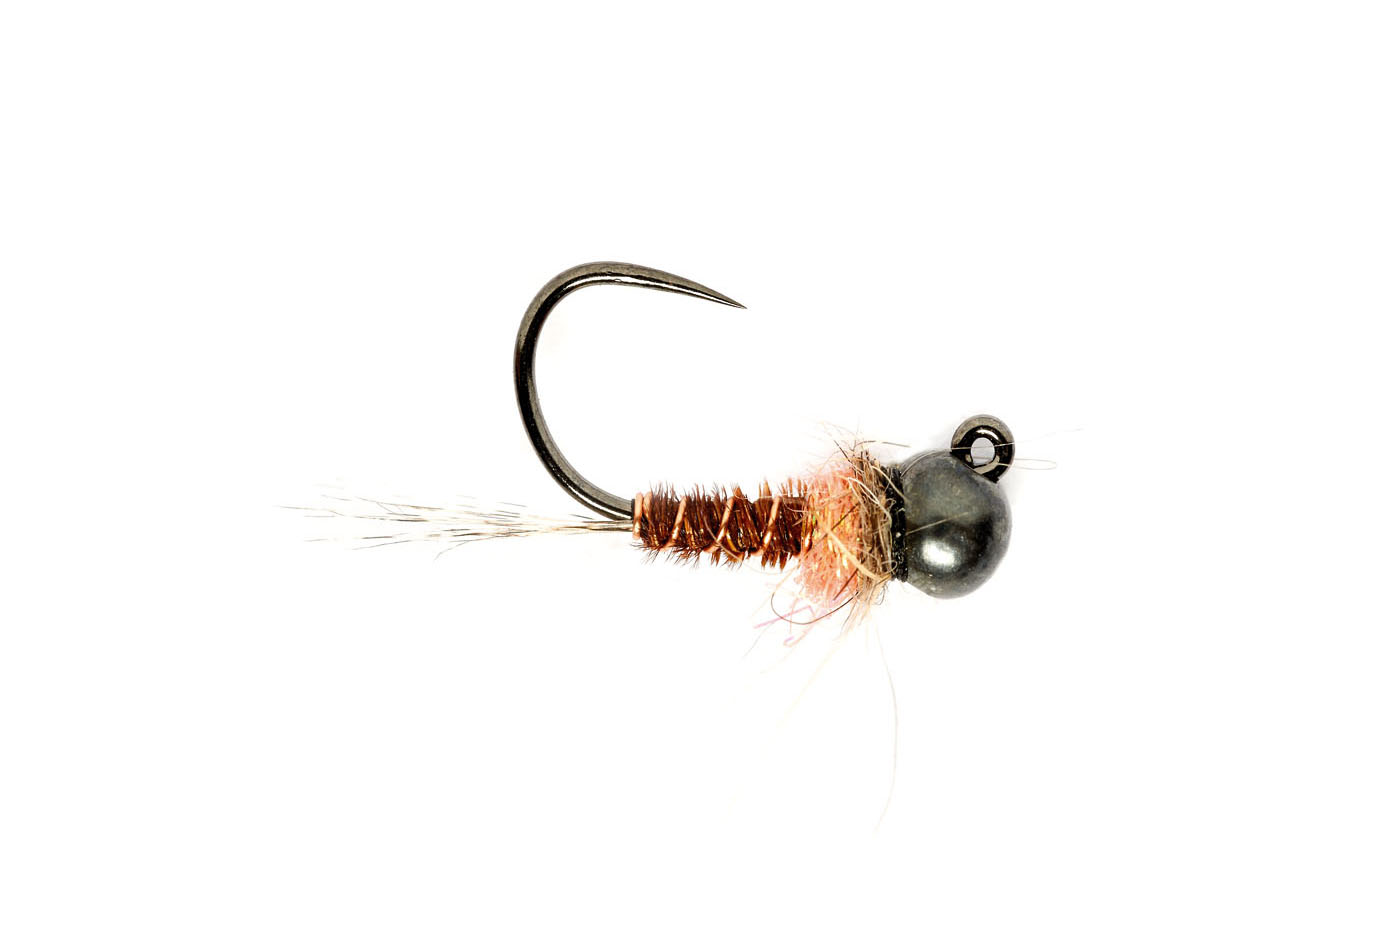 Pink Hot Spot Jig Barbless